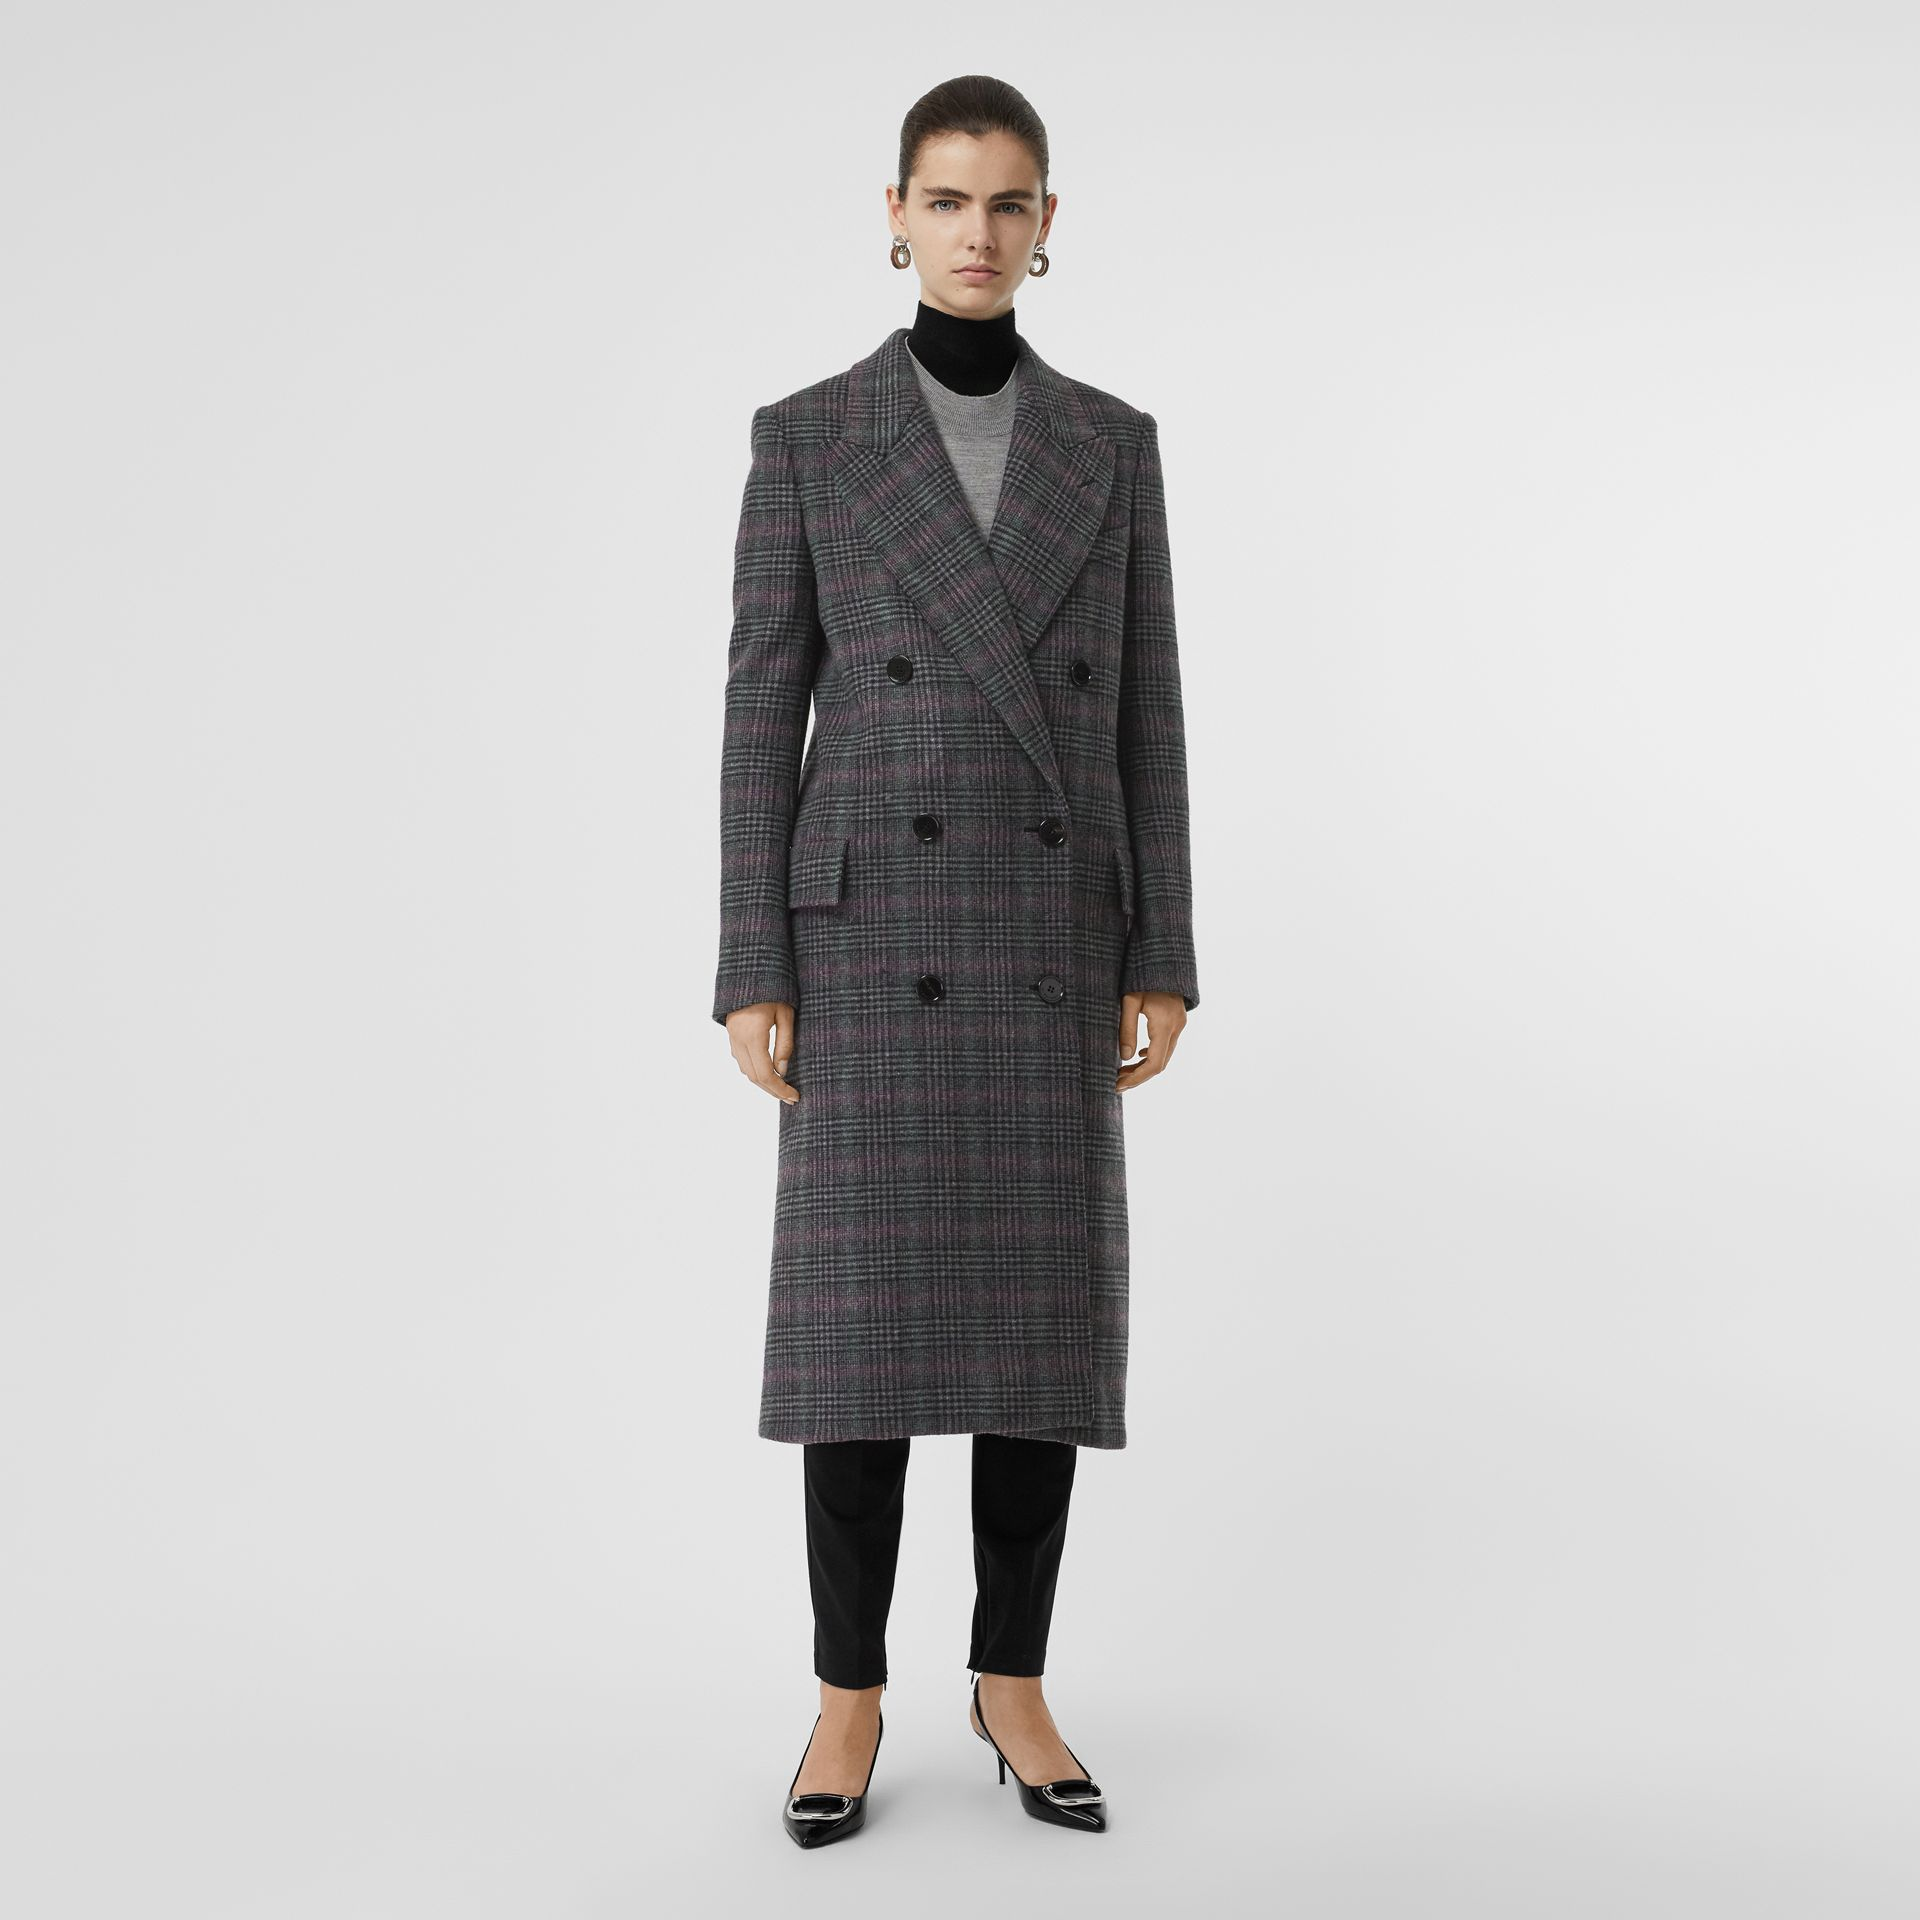 Prince of Wales Check Wool Tailored Coat in Charcoal - Women | Burberry - gallery image 5